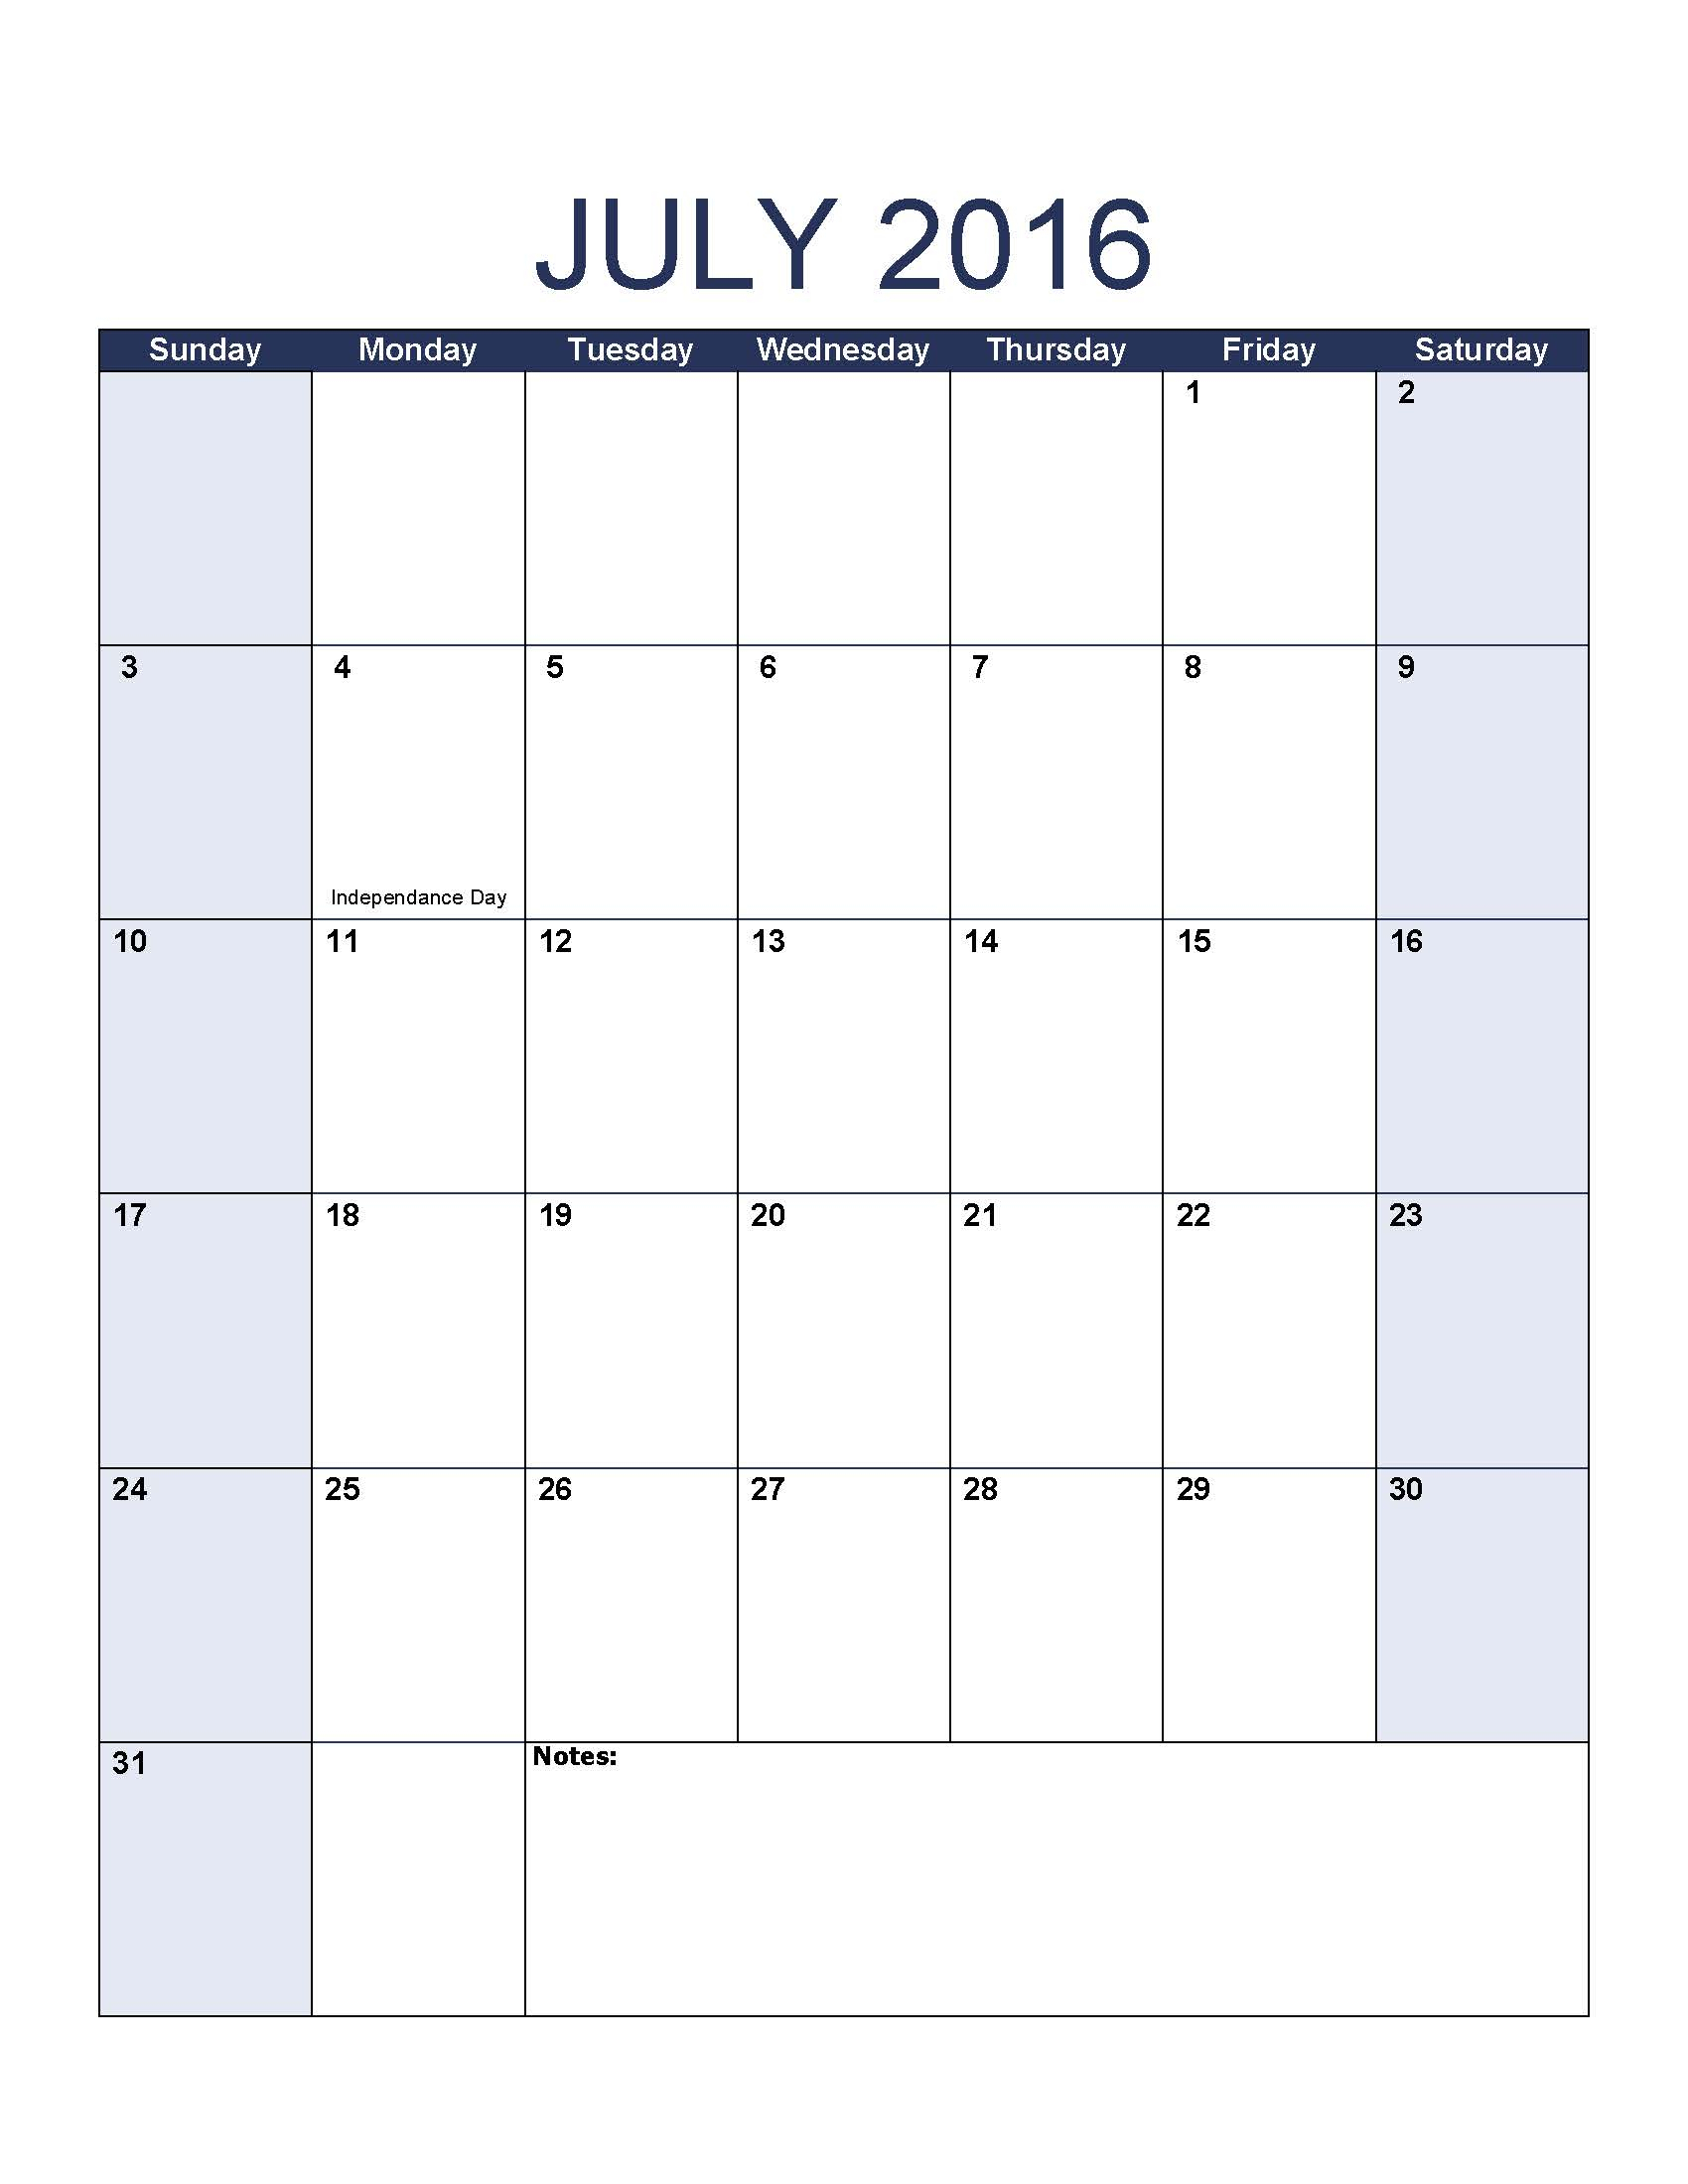 July 2016 Calendar Template within July 2016 Calendar With Holidays